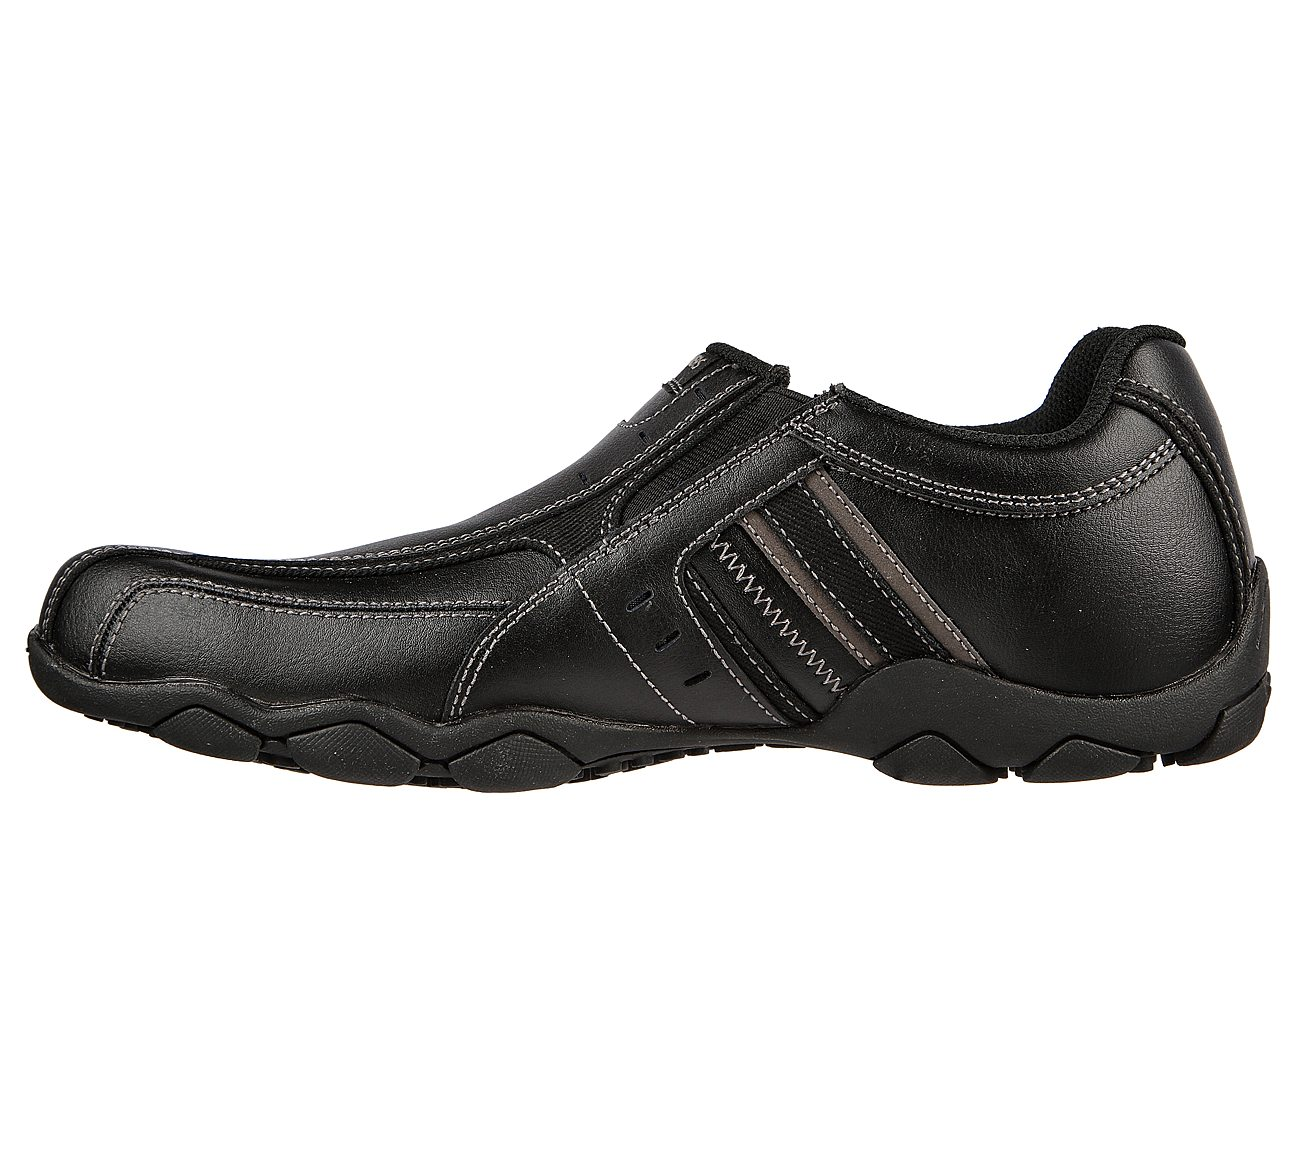 skechers men's diameter casual slip on